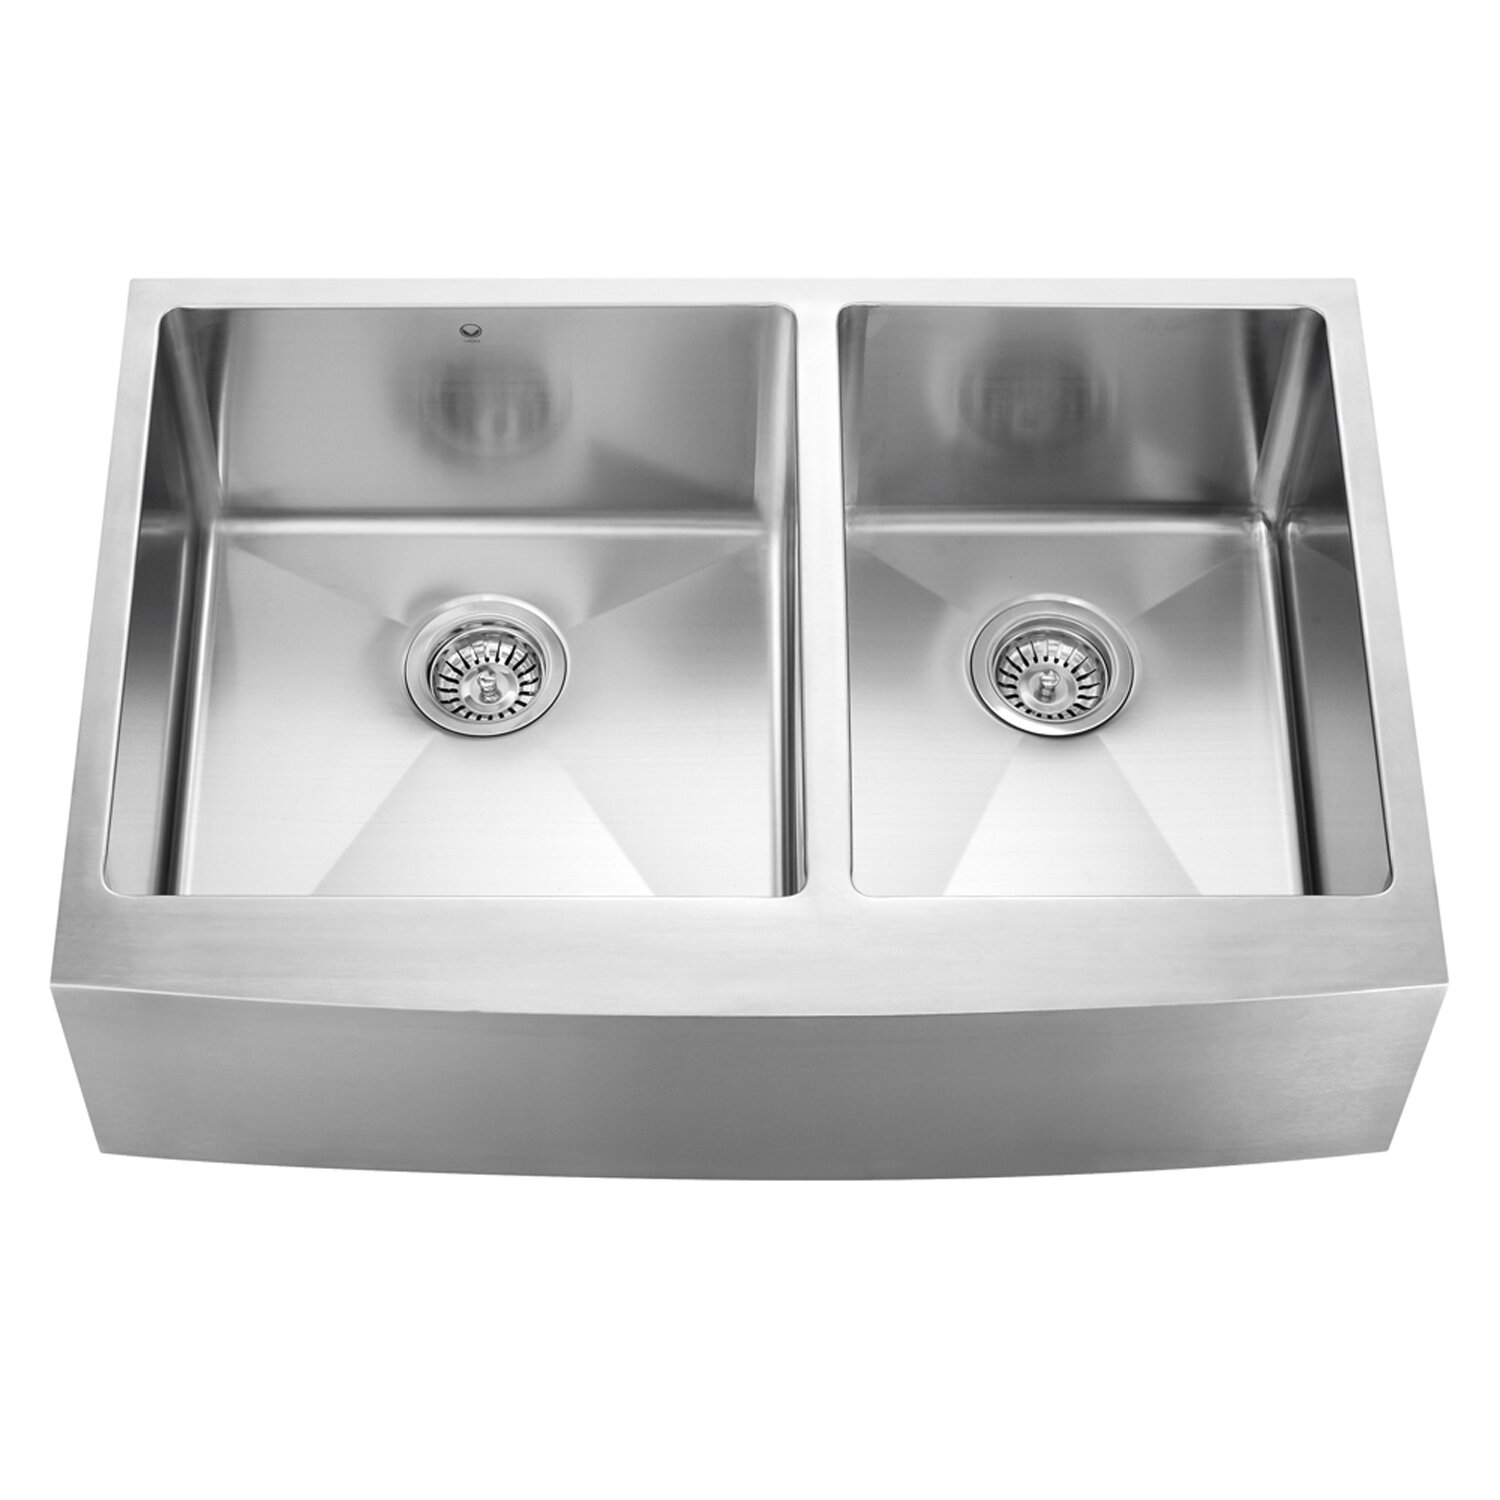 Farmhouse Apron Kitchen Sinks Vigo Alma 33 Inch Farmhouse Apron 60 40 Double Bowl 16 Gauge